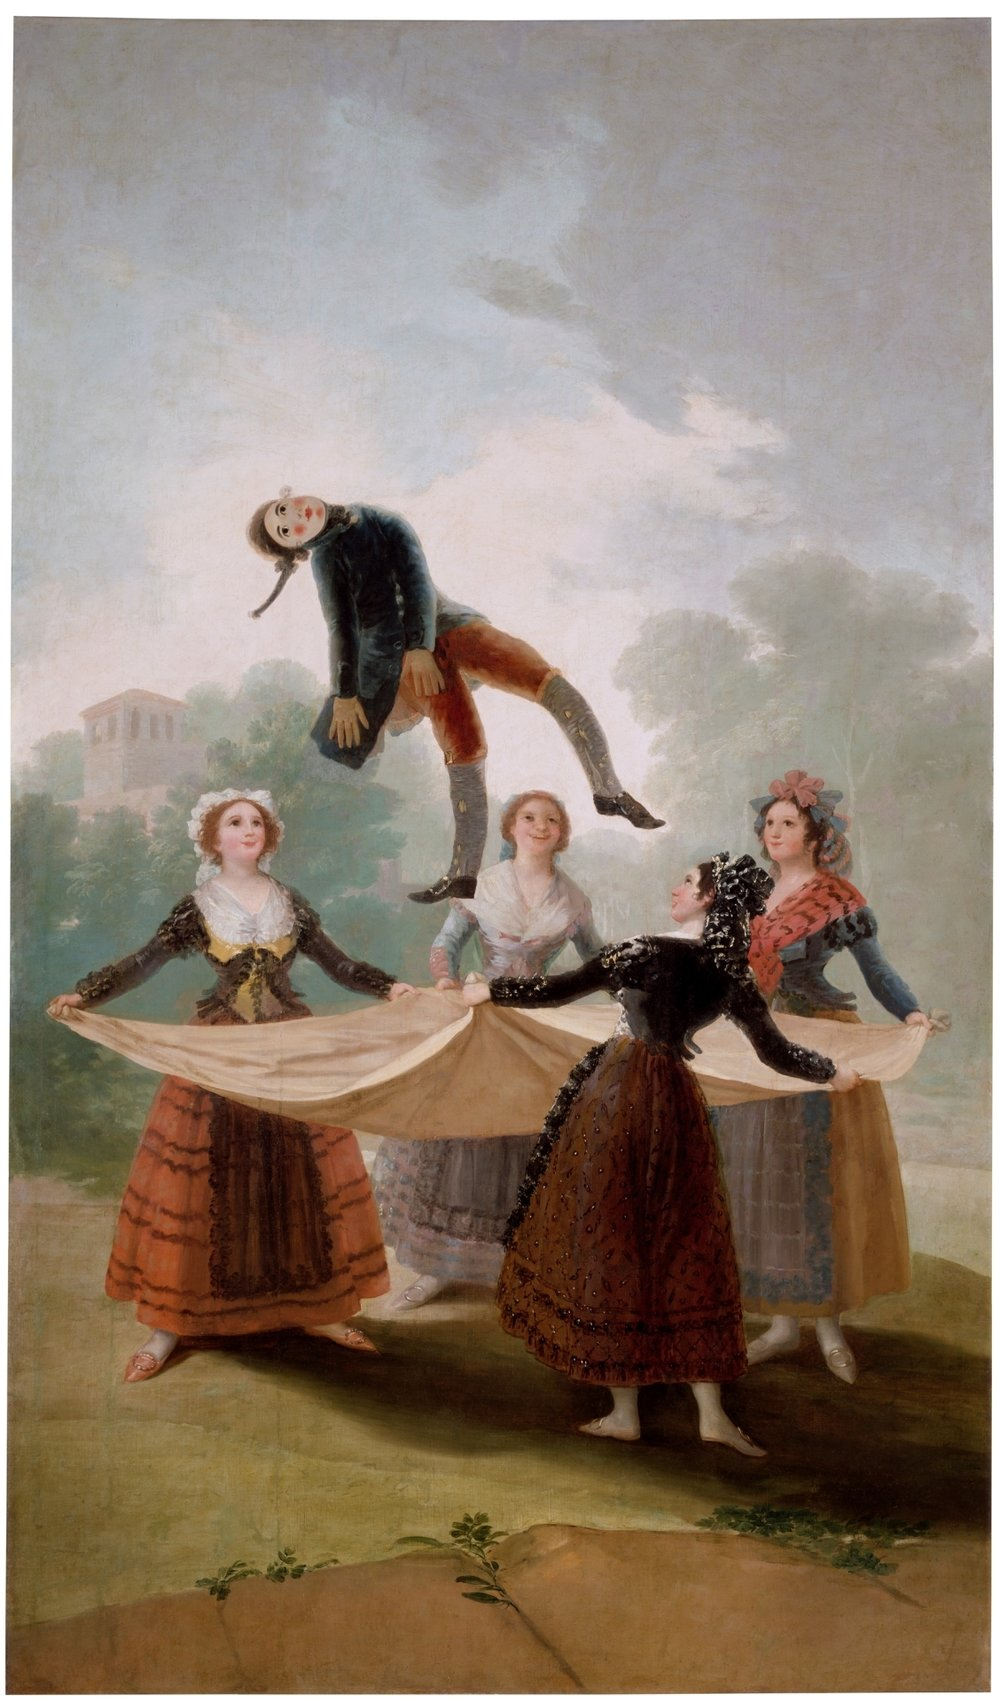 Franicisco Goya - The Straw Manikin